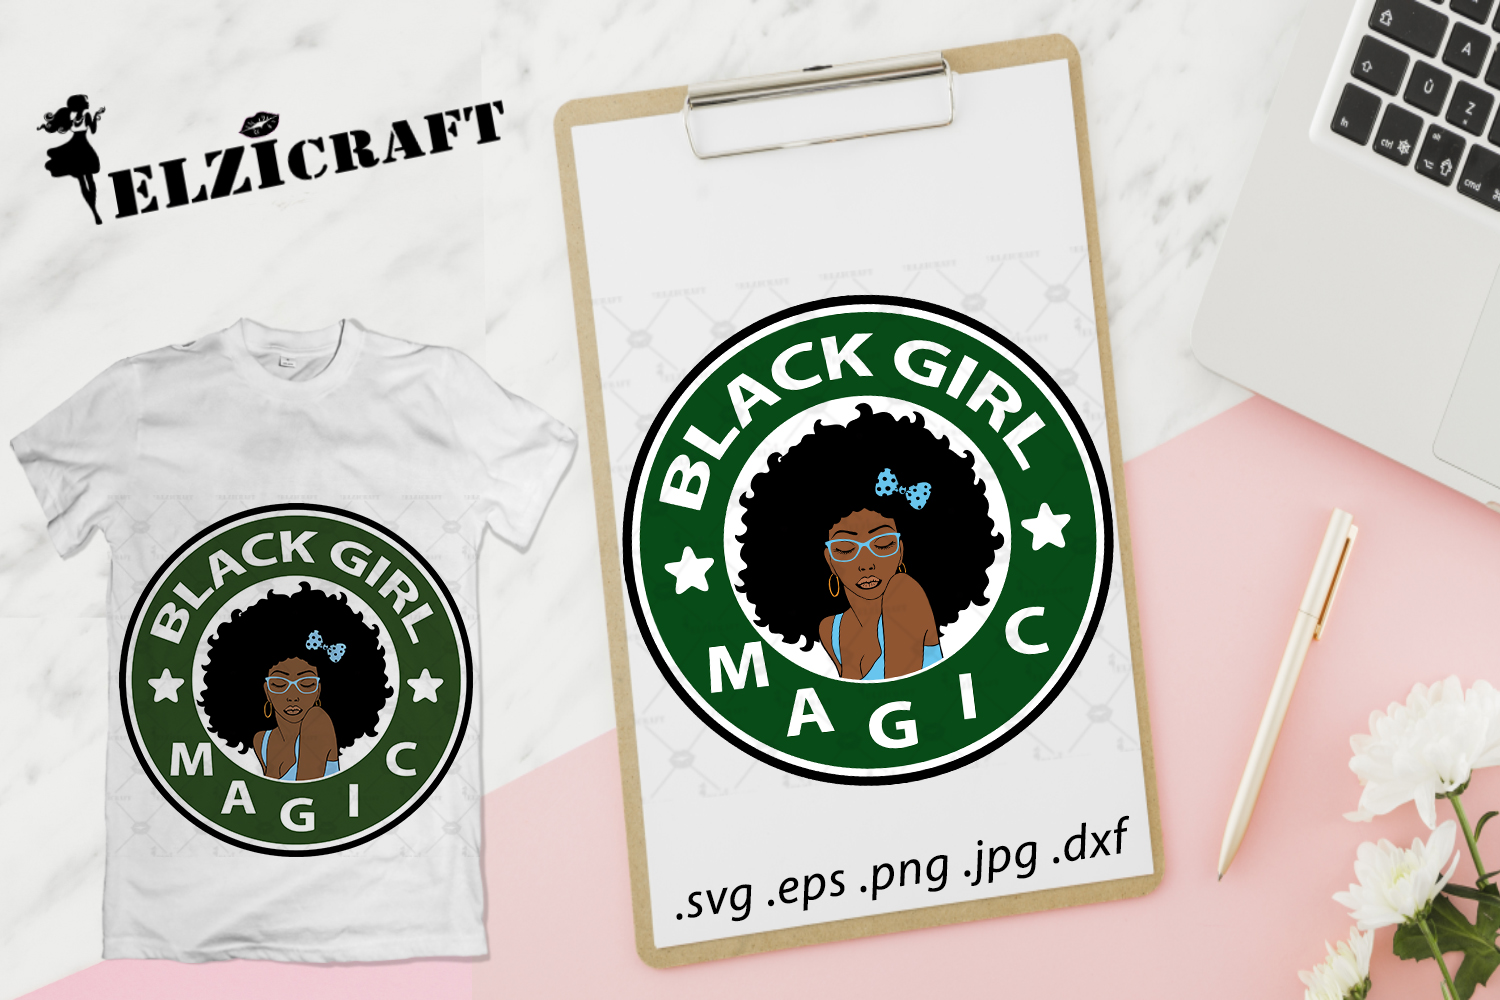 Download Free Black Girl Magic Afro Woman Design Grafico Por Elzicraft for Cricut Explore, Silhouette and other cutting machines.